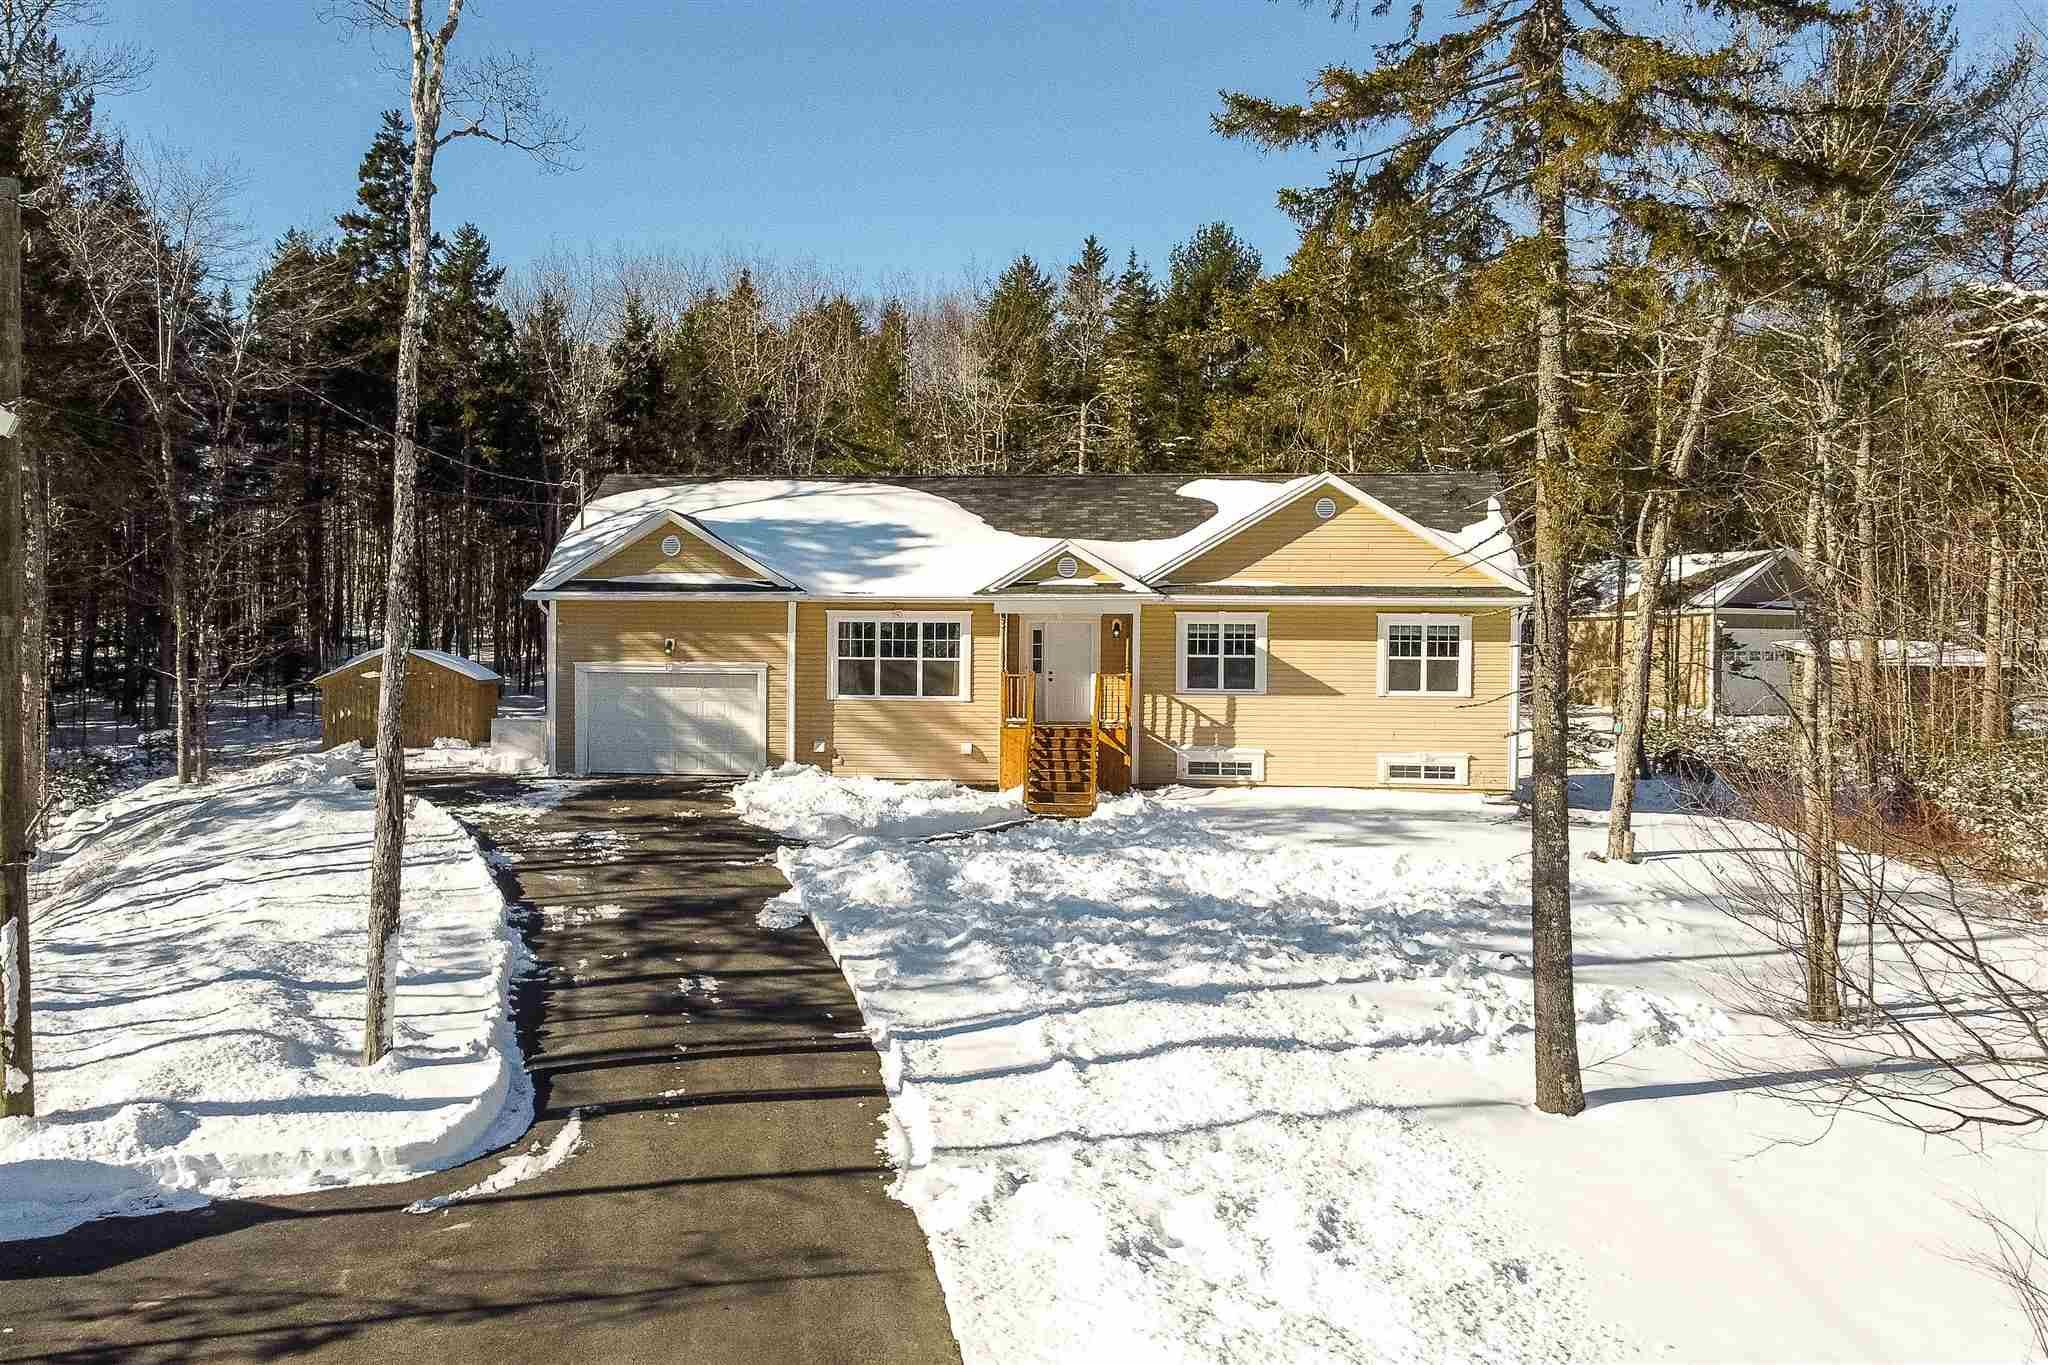 Main Photo: 83 Crooked Stick Pass in Beaver Bank: 26-Beaverbank, Upper Sackville Residential for sale (Halifax-Dartmouth)  : MLS®# 202102585